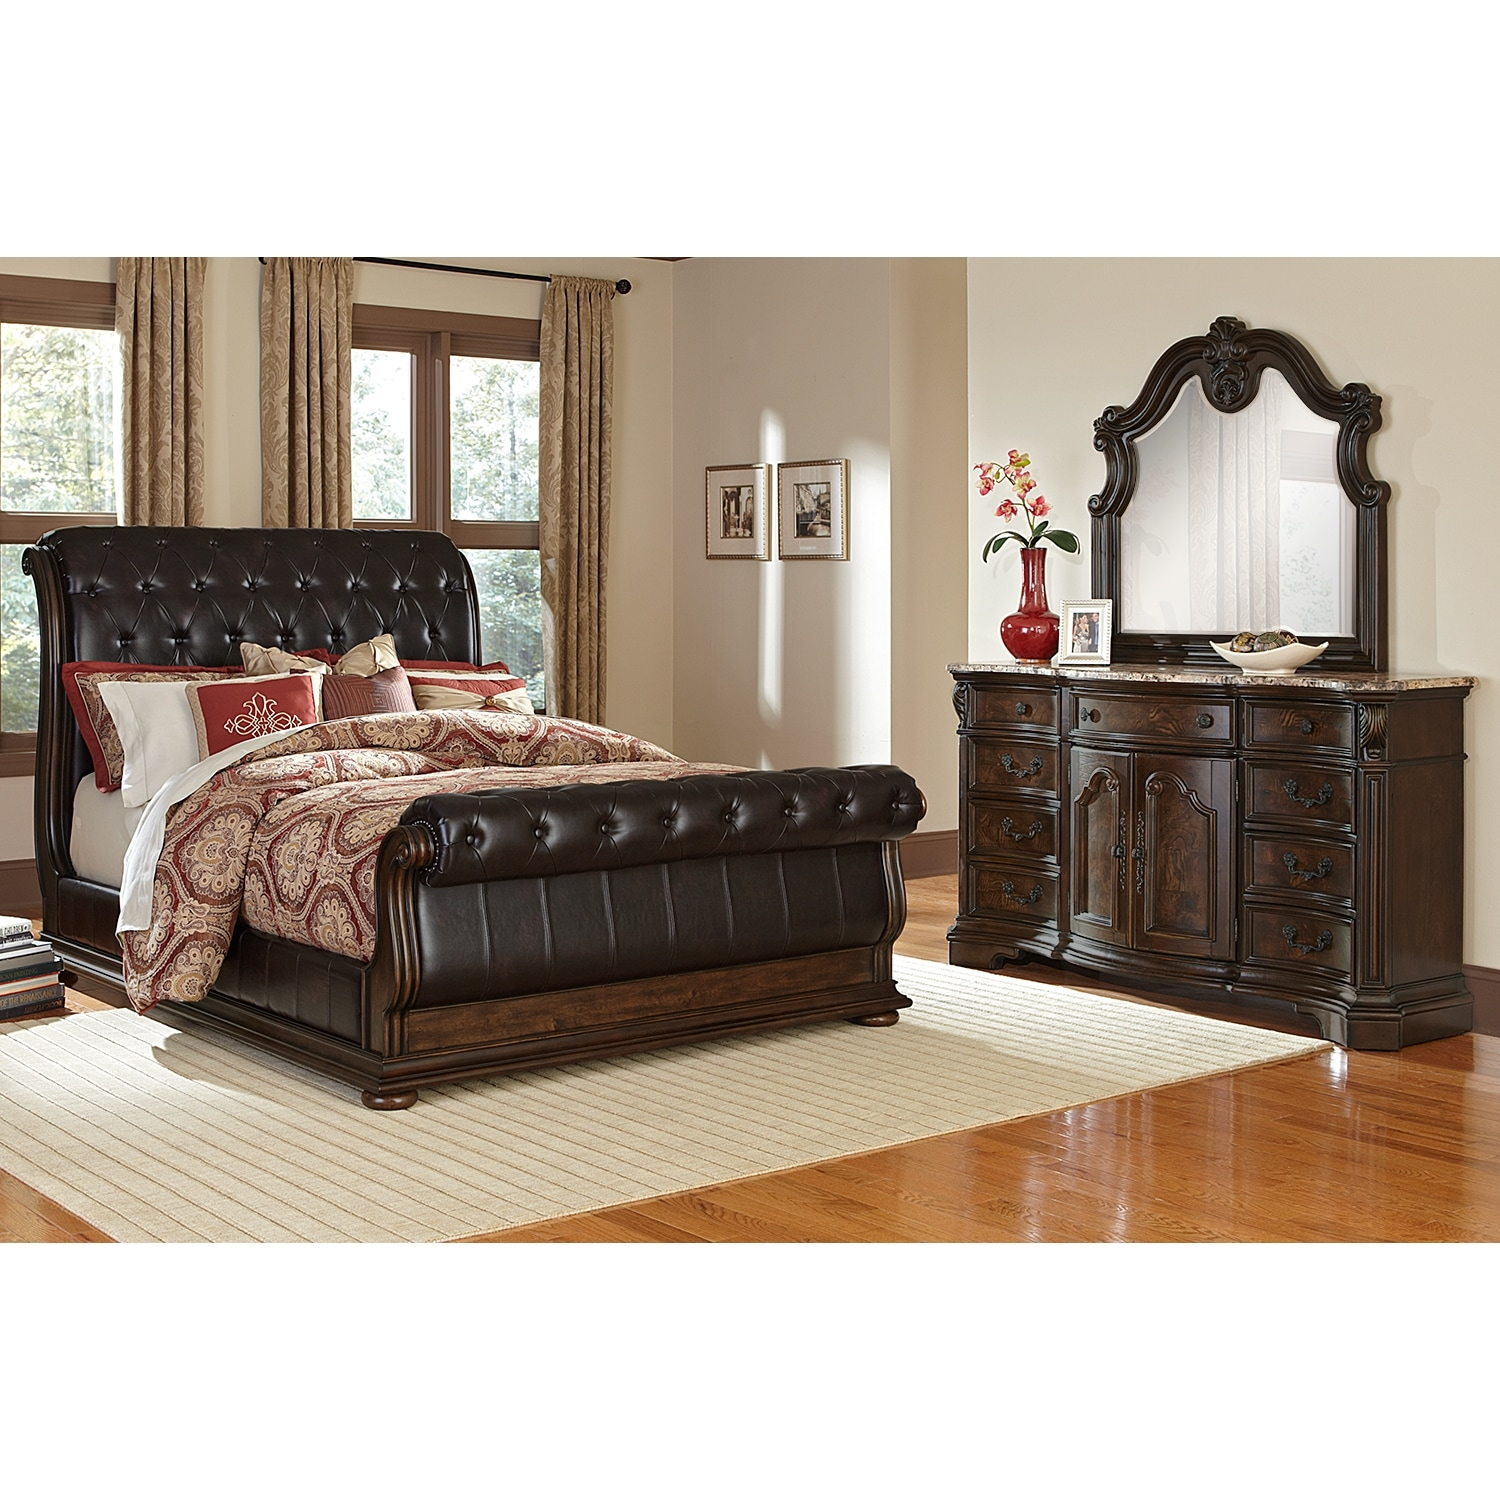 Charming $2,299.98 Monticello 5 Piece Queen Upholstered Sleigh Bedroom Set   Pecan  By Pulaski